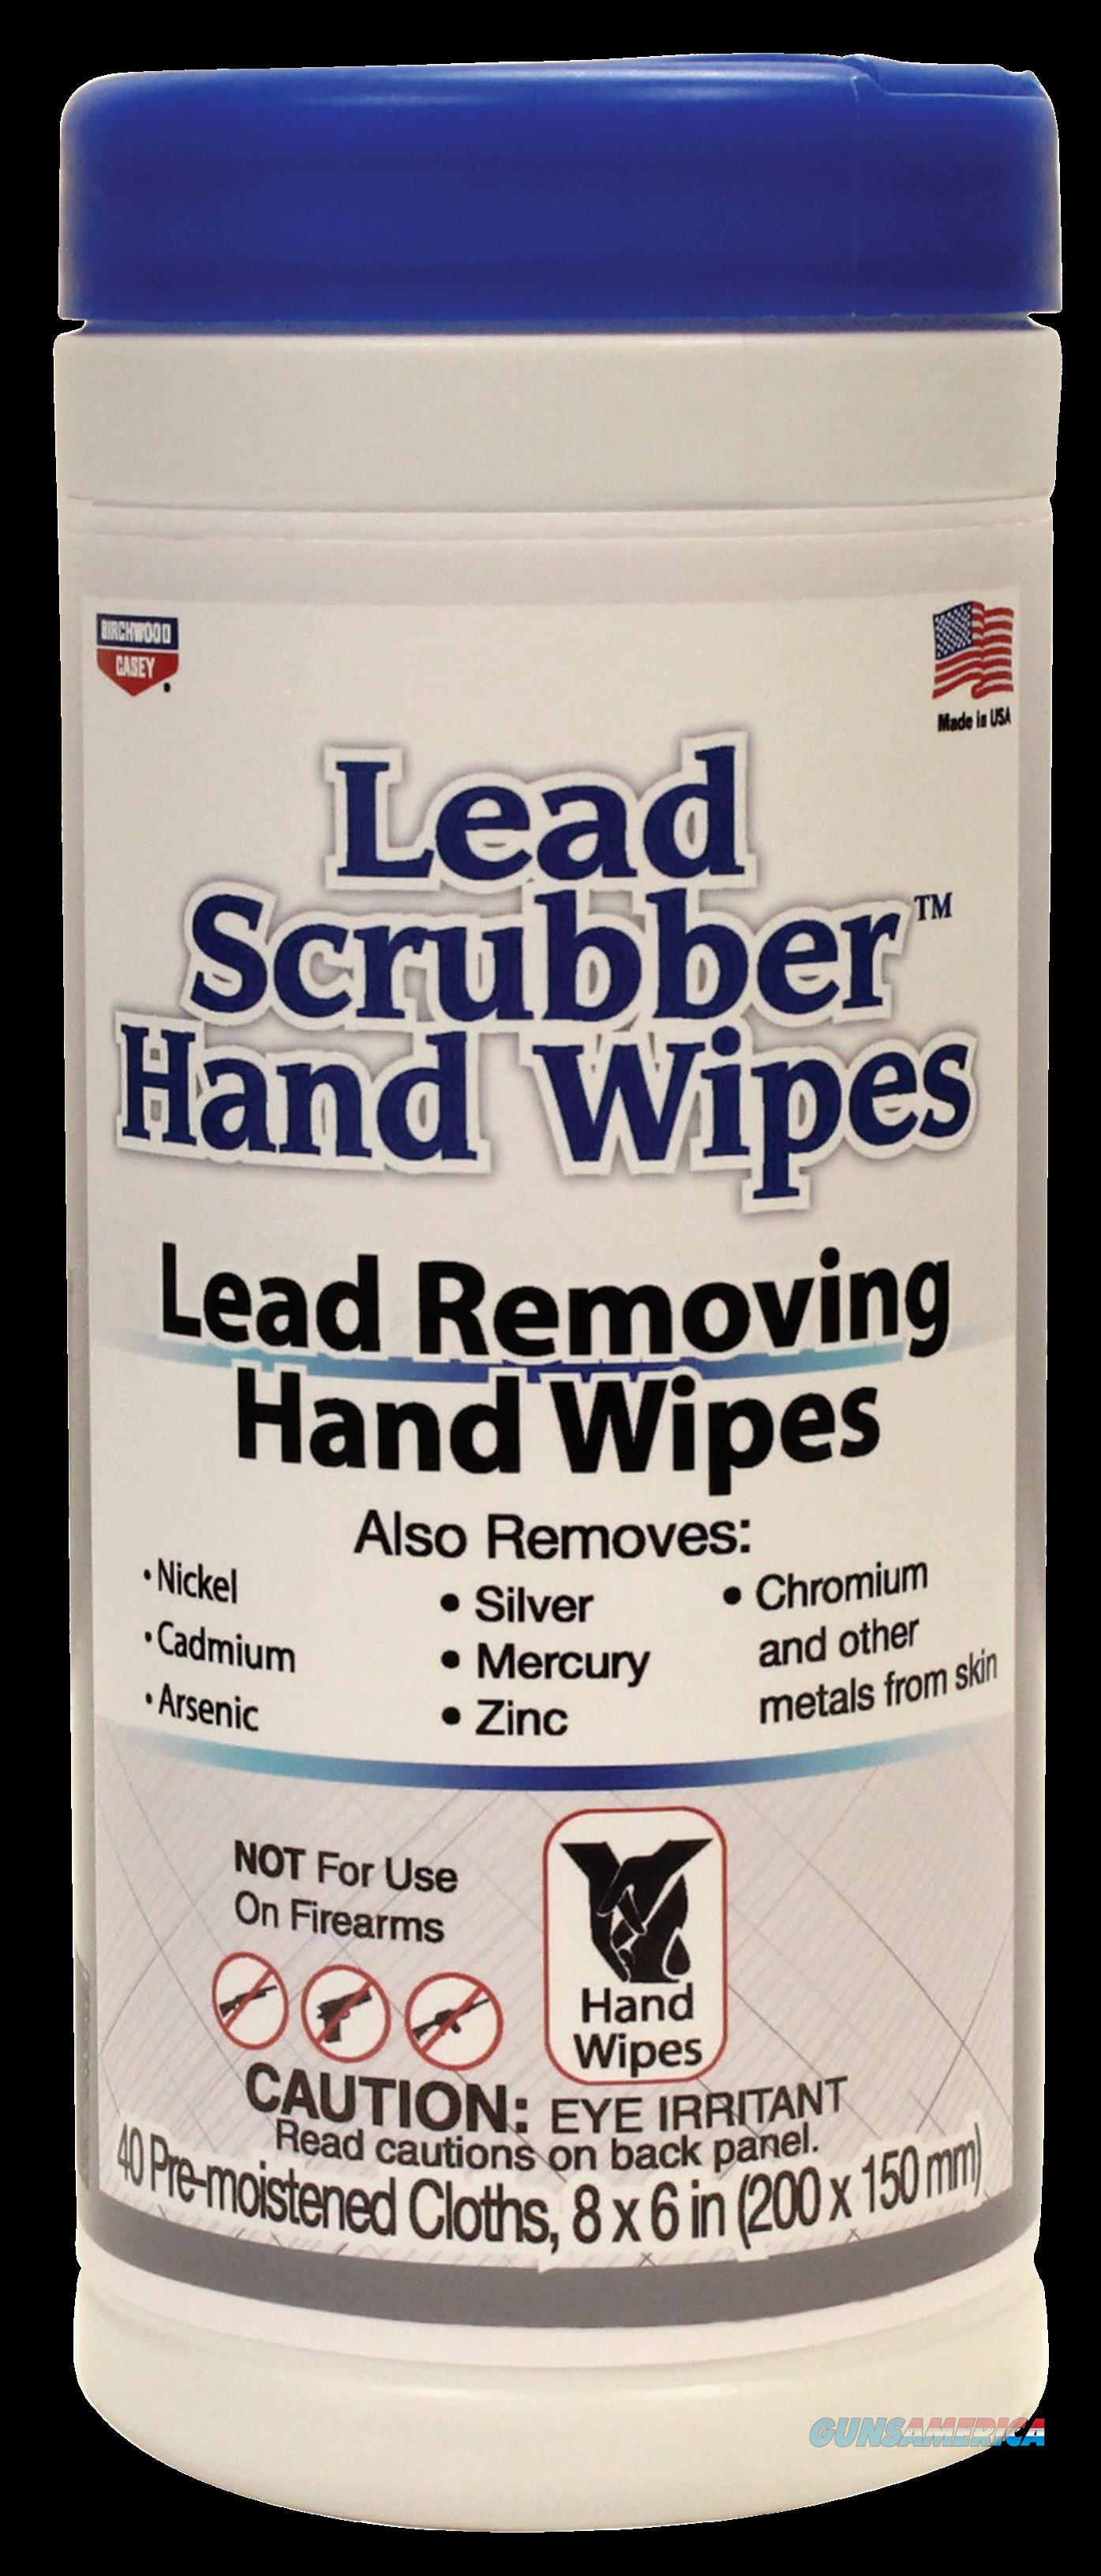 Birchwood Casey Lead Scrubber, Bir 32440 Lead Scrubber Hand Wipes    40pk  Guns > Pistols > 1911 Pistol Copies (non-Colt)